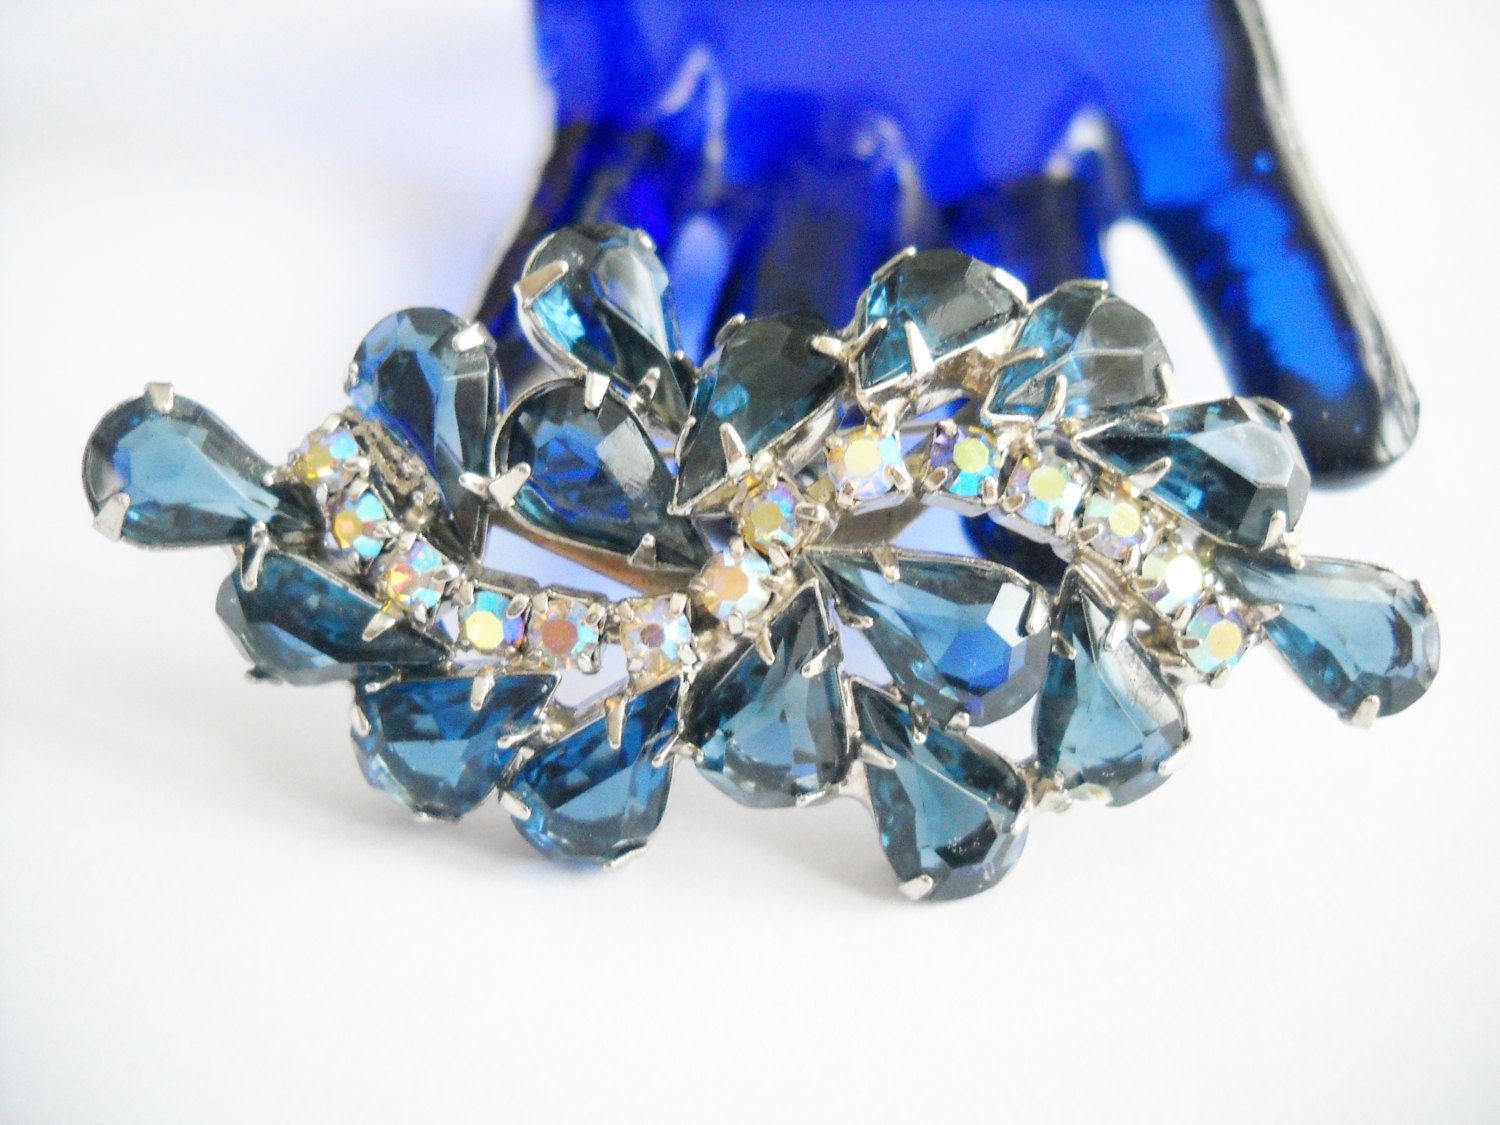 Vintage Brooch Sapphire Teardrop Blue Open Backed Rhinestones Prong Set Aurora Borealis Hollywood Regency Mid Century by FindCharlotte on Etsy